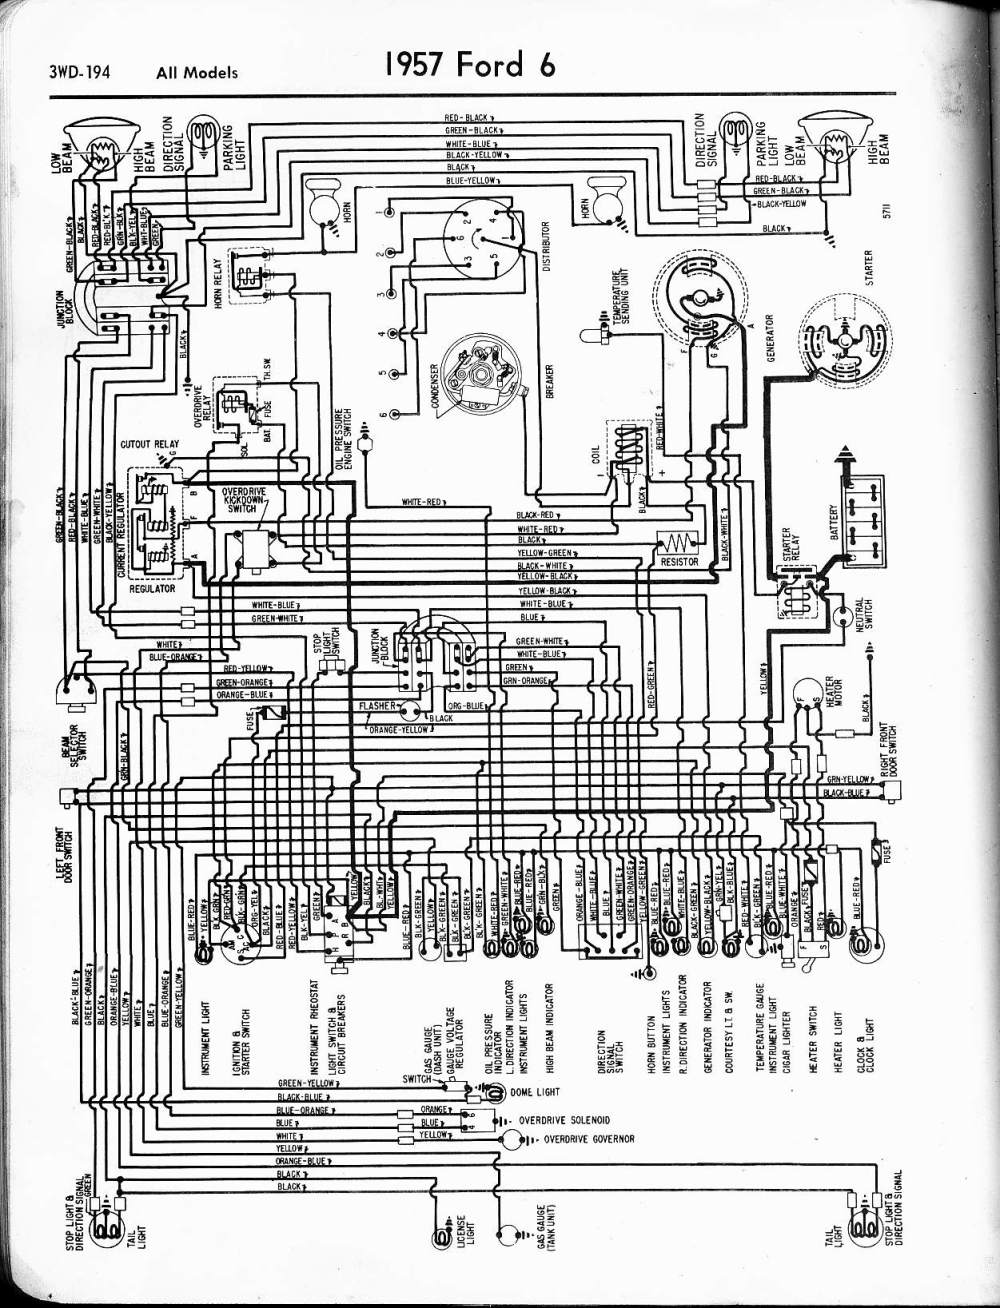 medium resolution of 73 ford pinto ignition system wiring diagram wiring library rh 75 mac happen de duraspark ignition